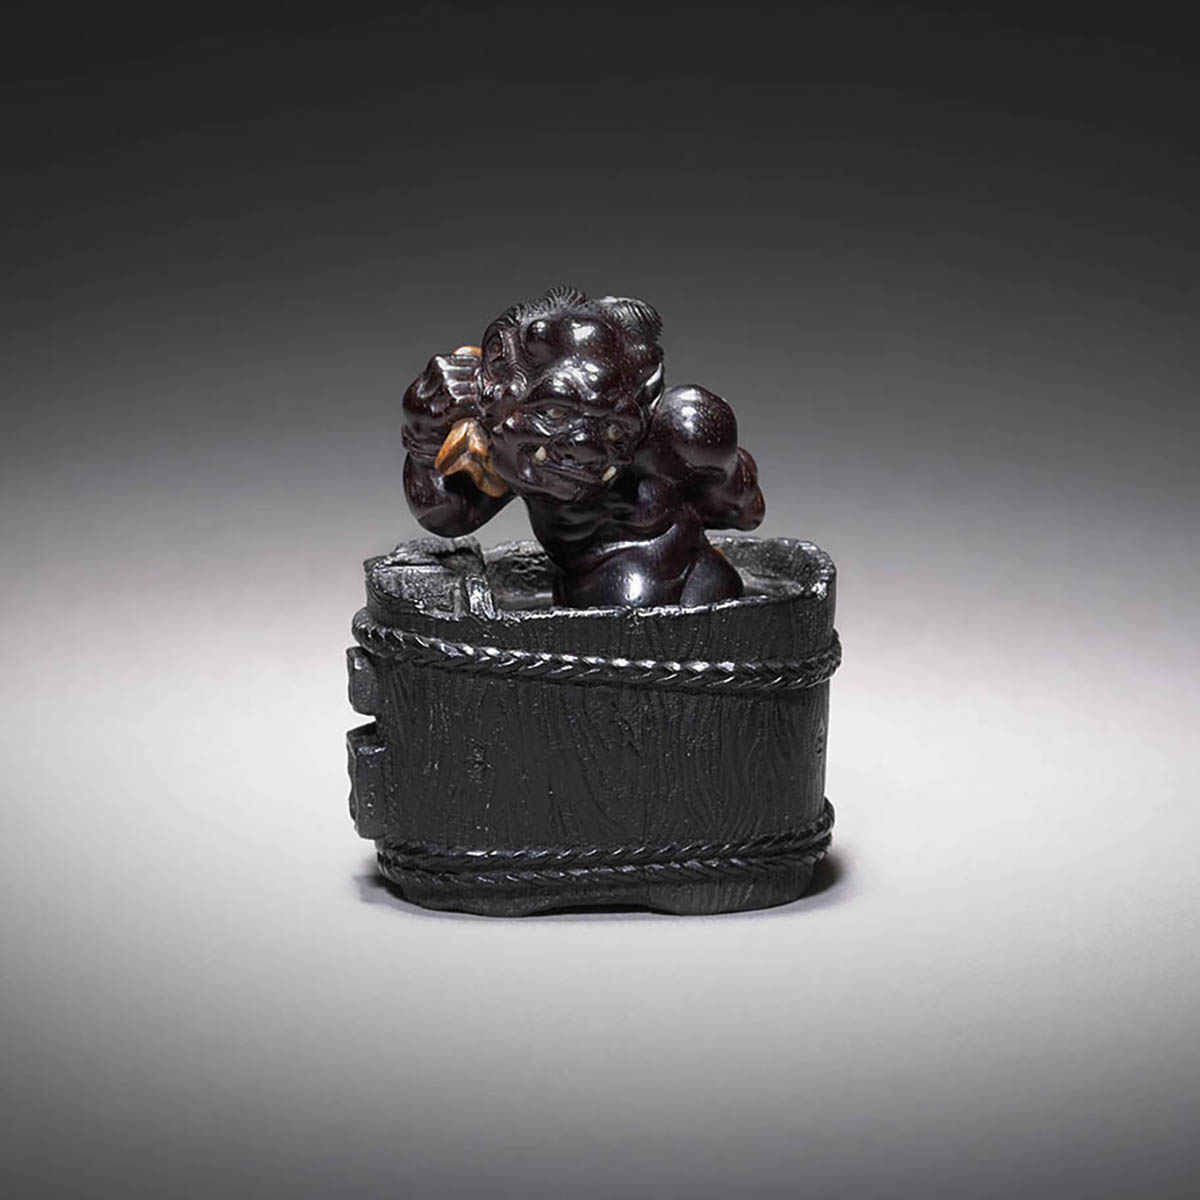 Dark Wood Netsuke of Oni Gyozui by Ouchi Sosui, MR3542_v1.2